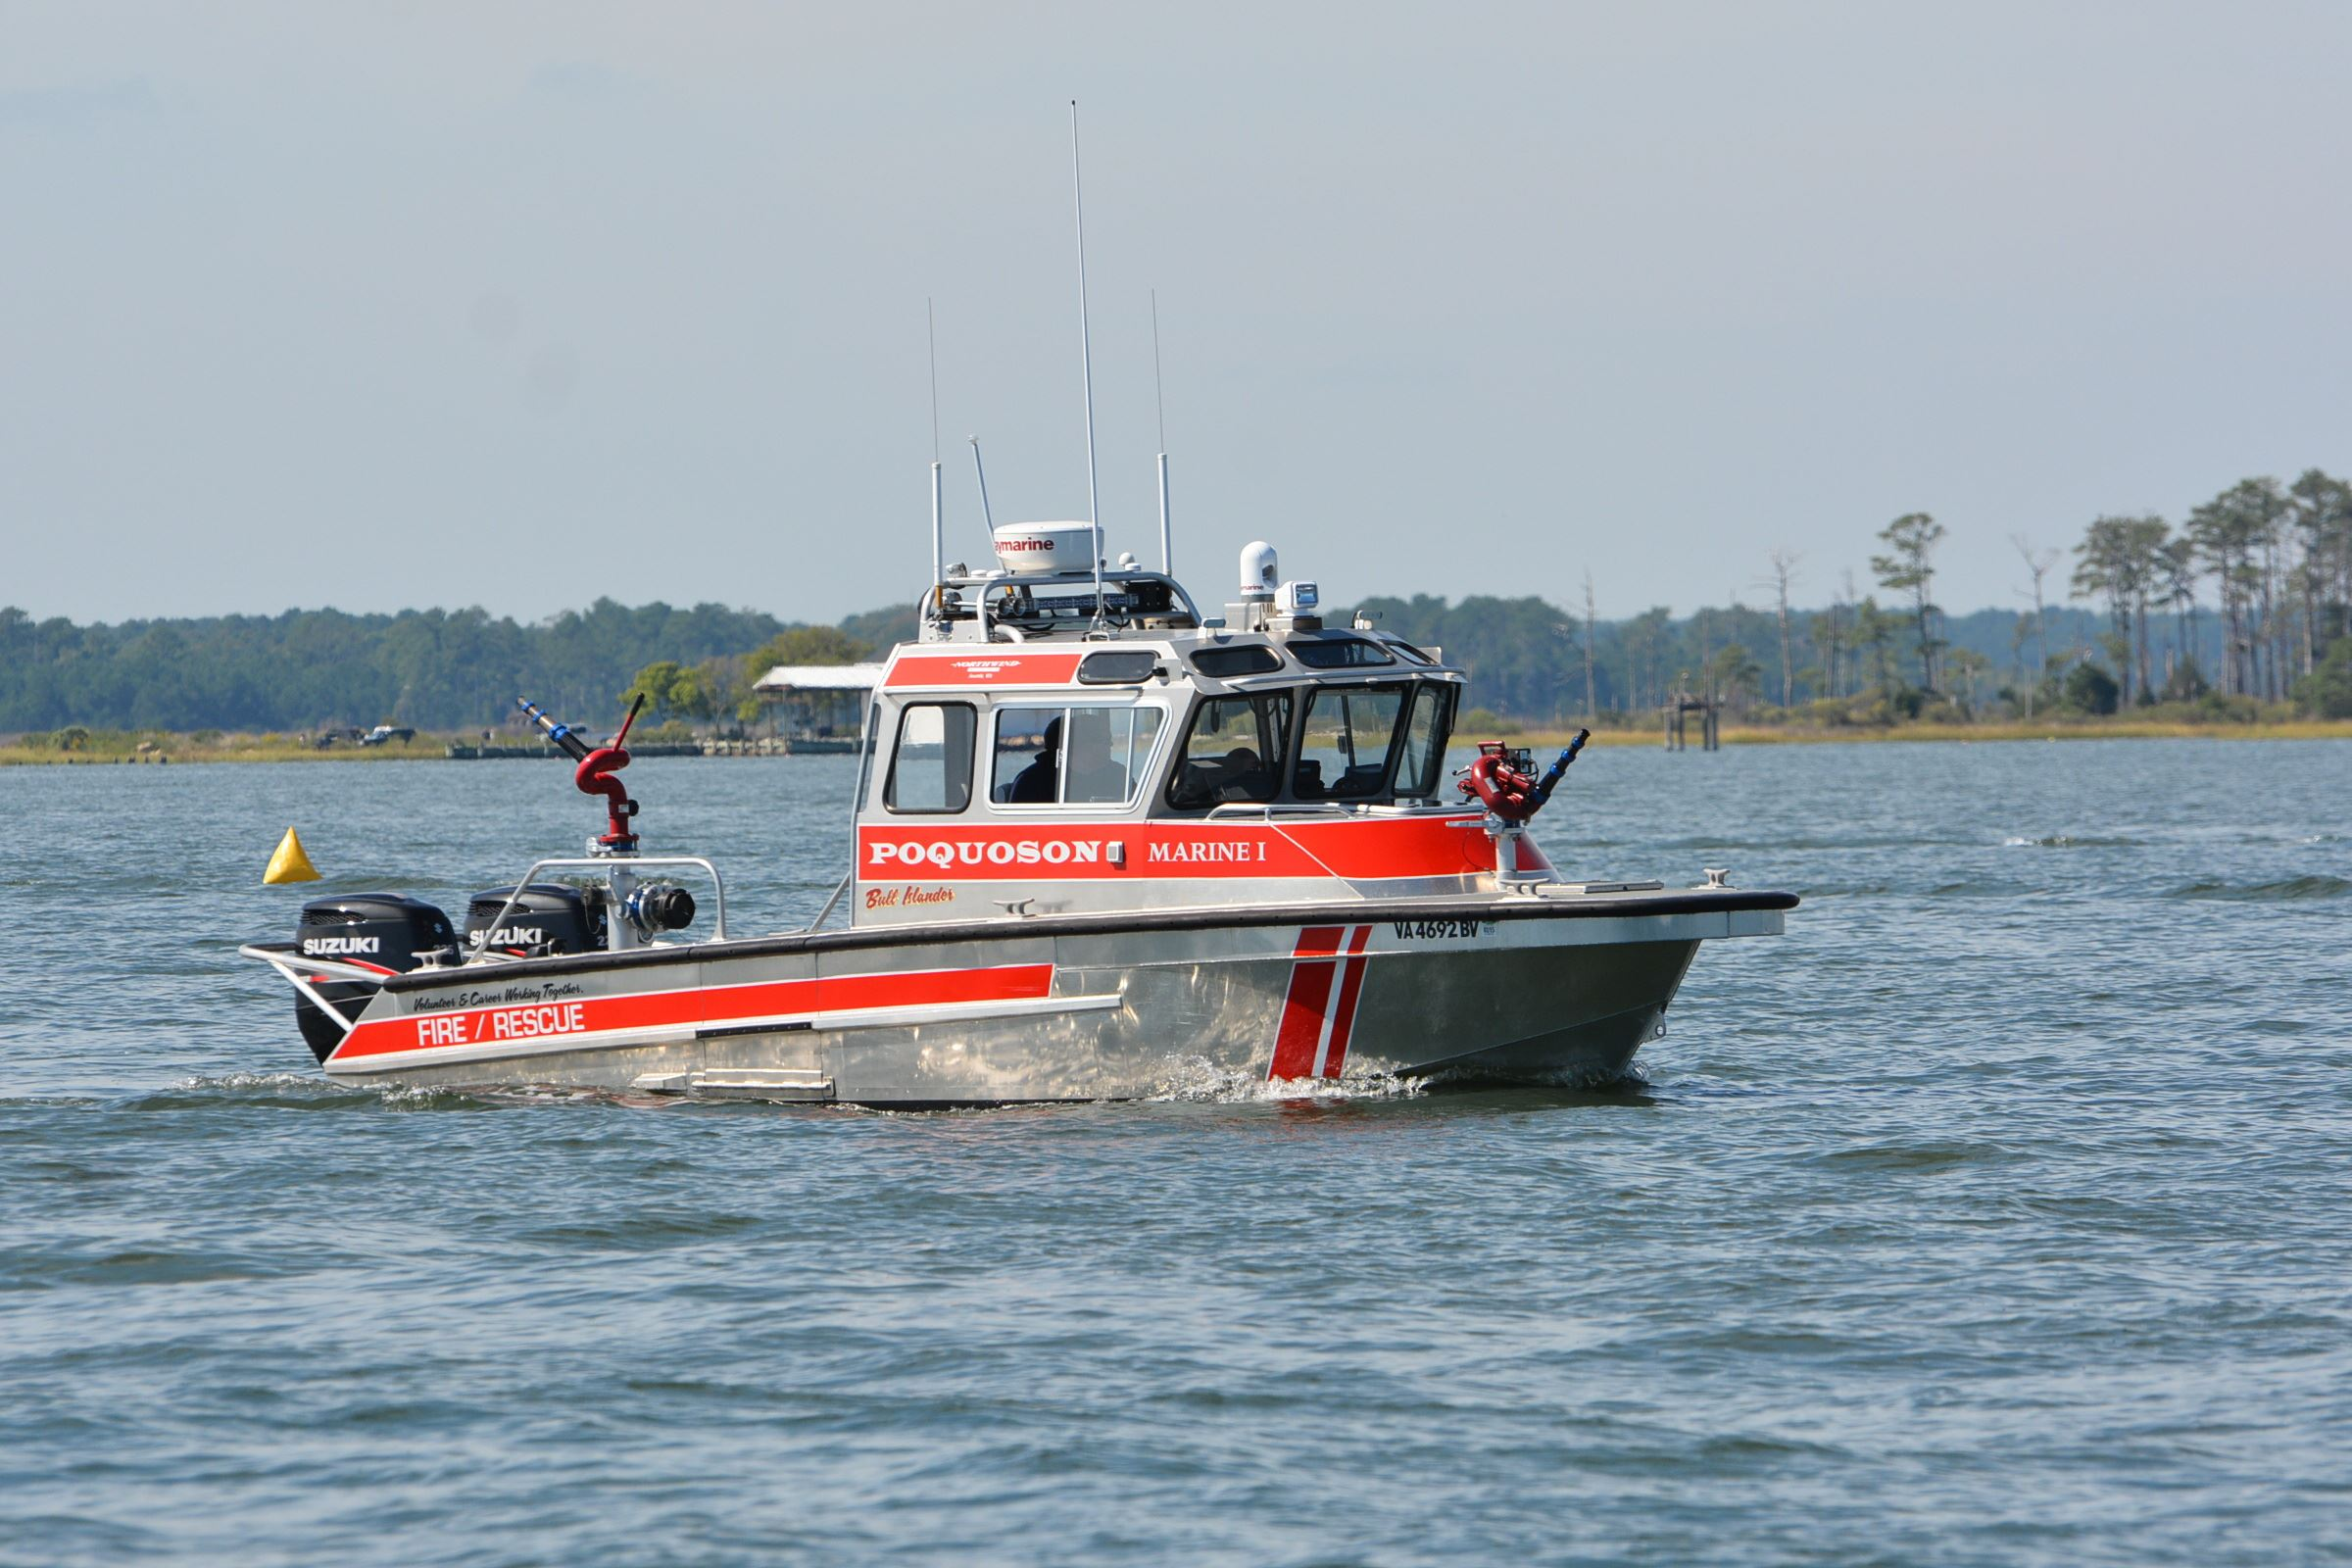 Marine 1 in water